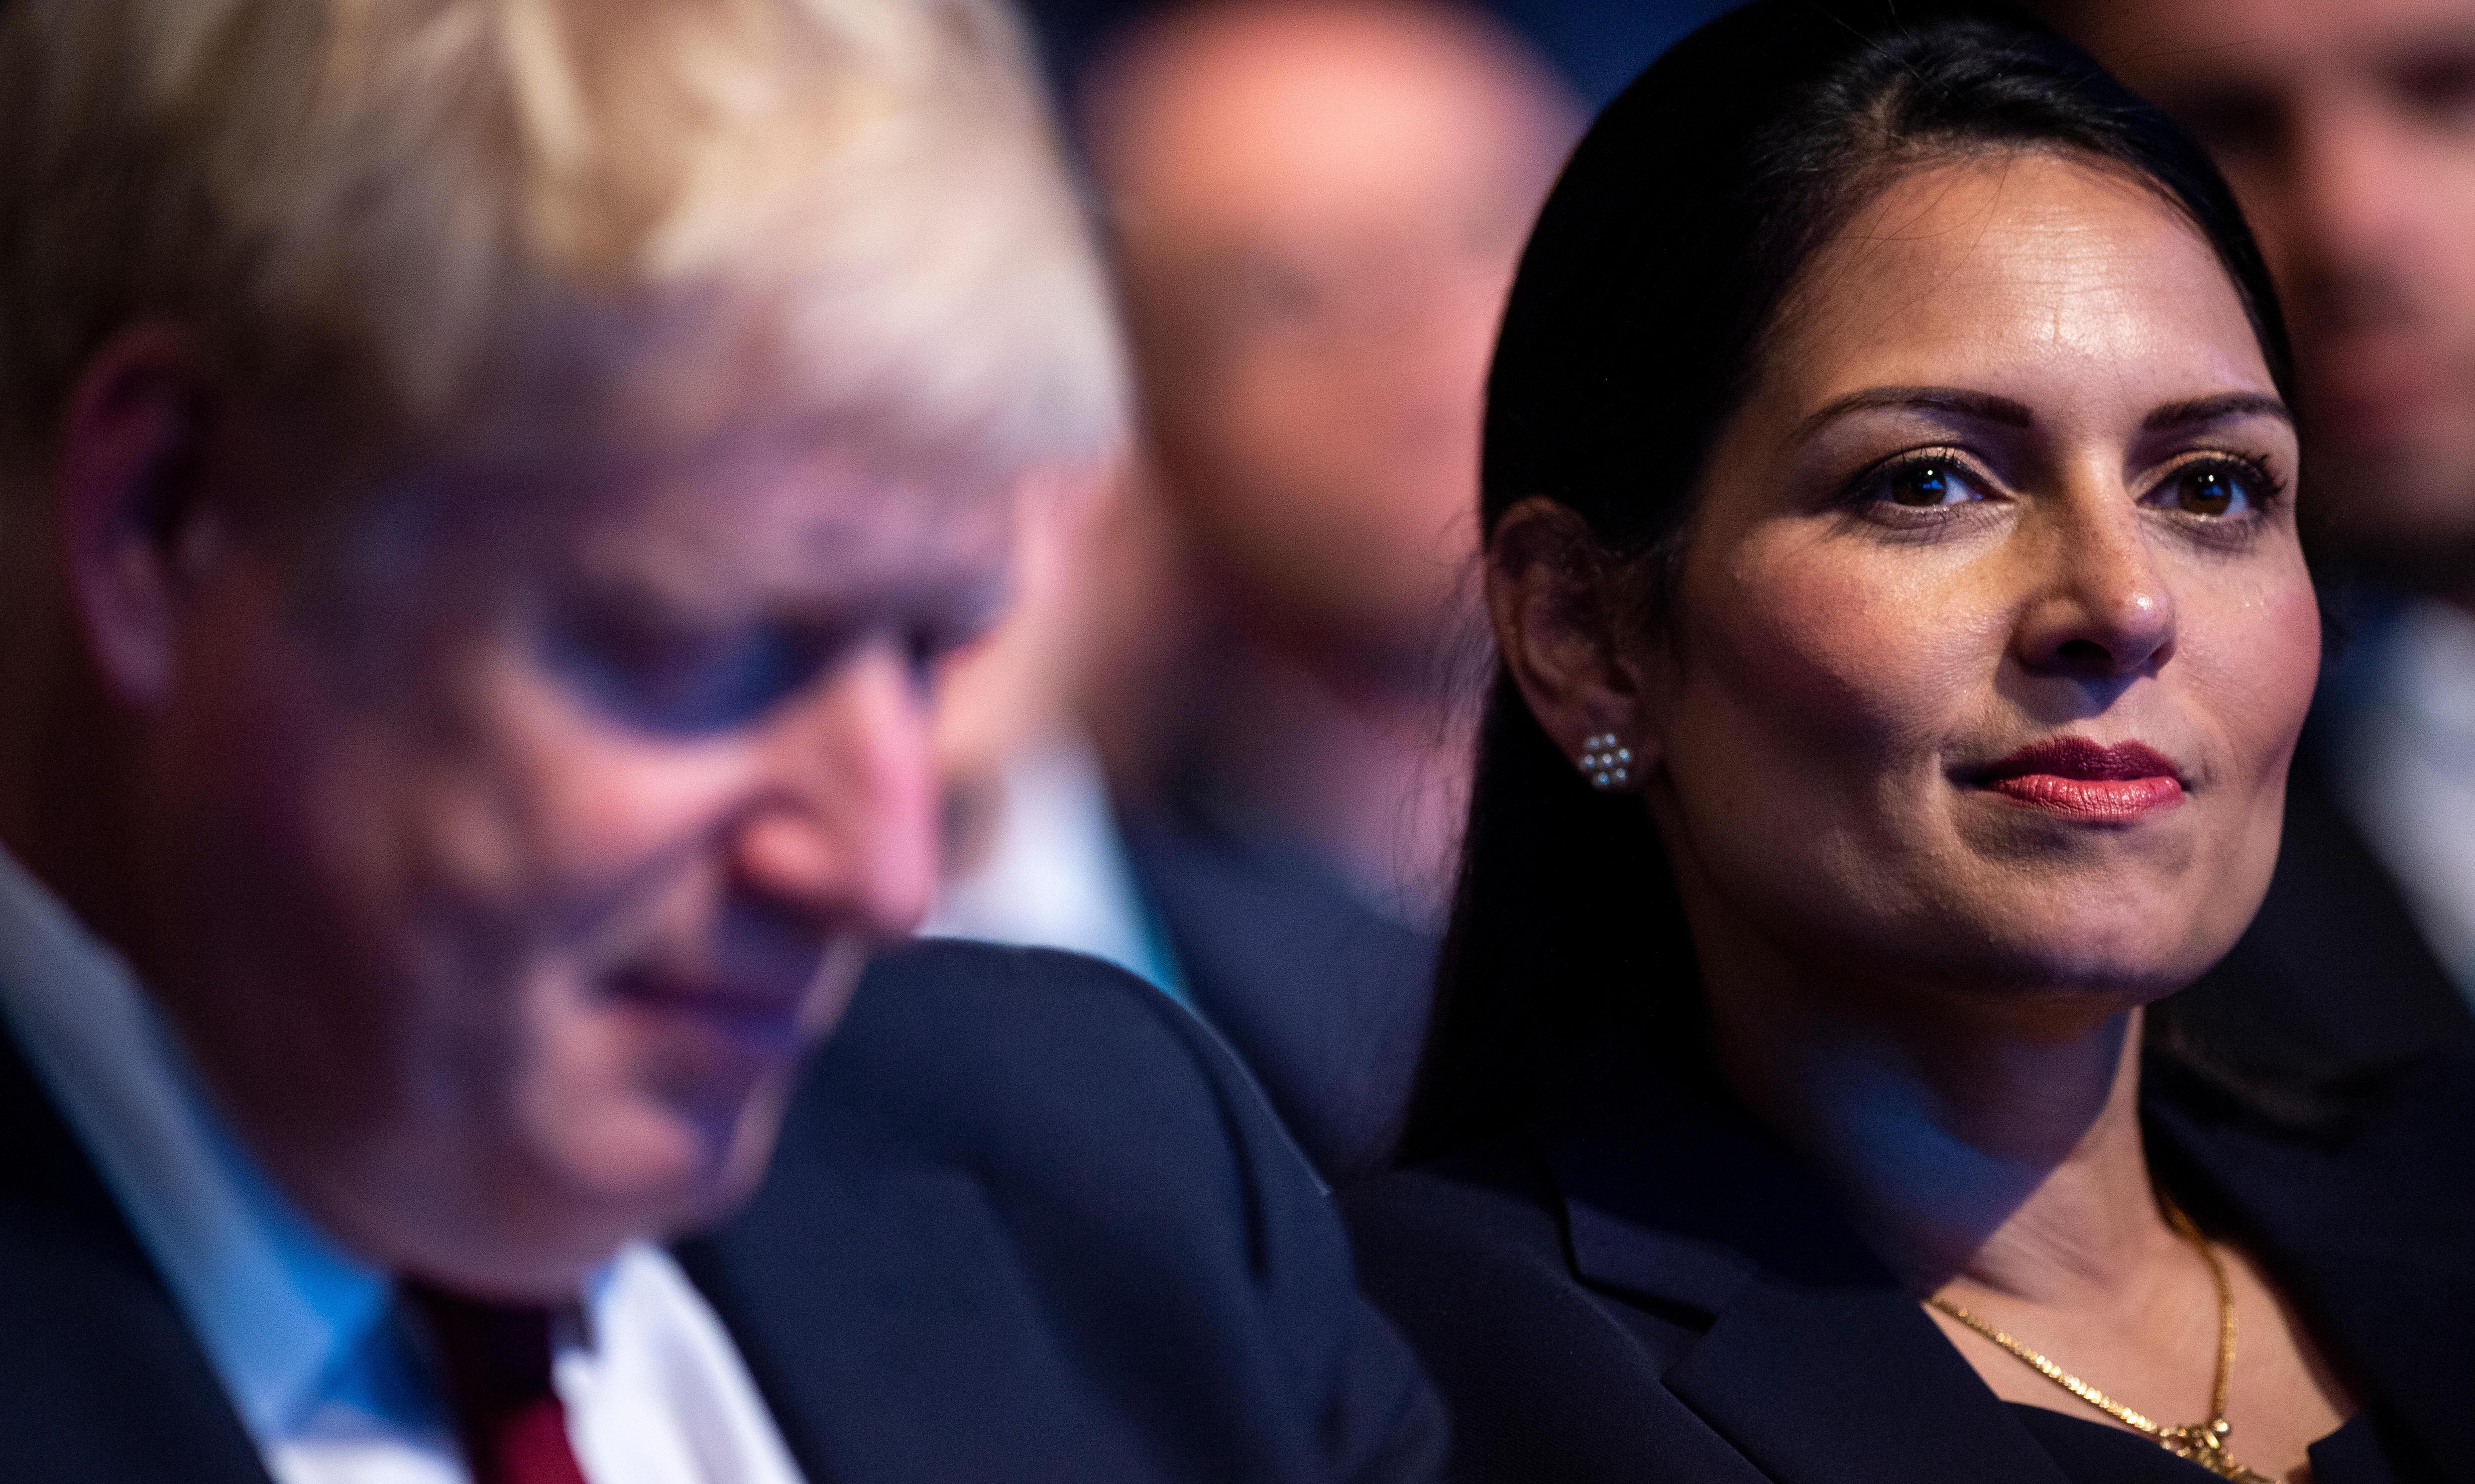 Priti Patel is out of her depth – and that is Boris Johnson's fault